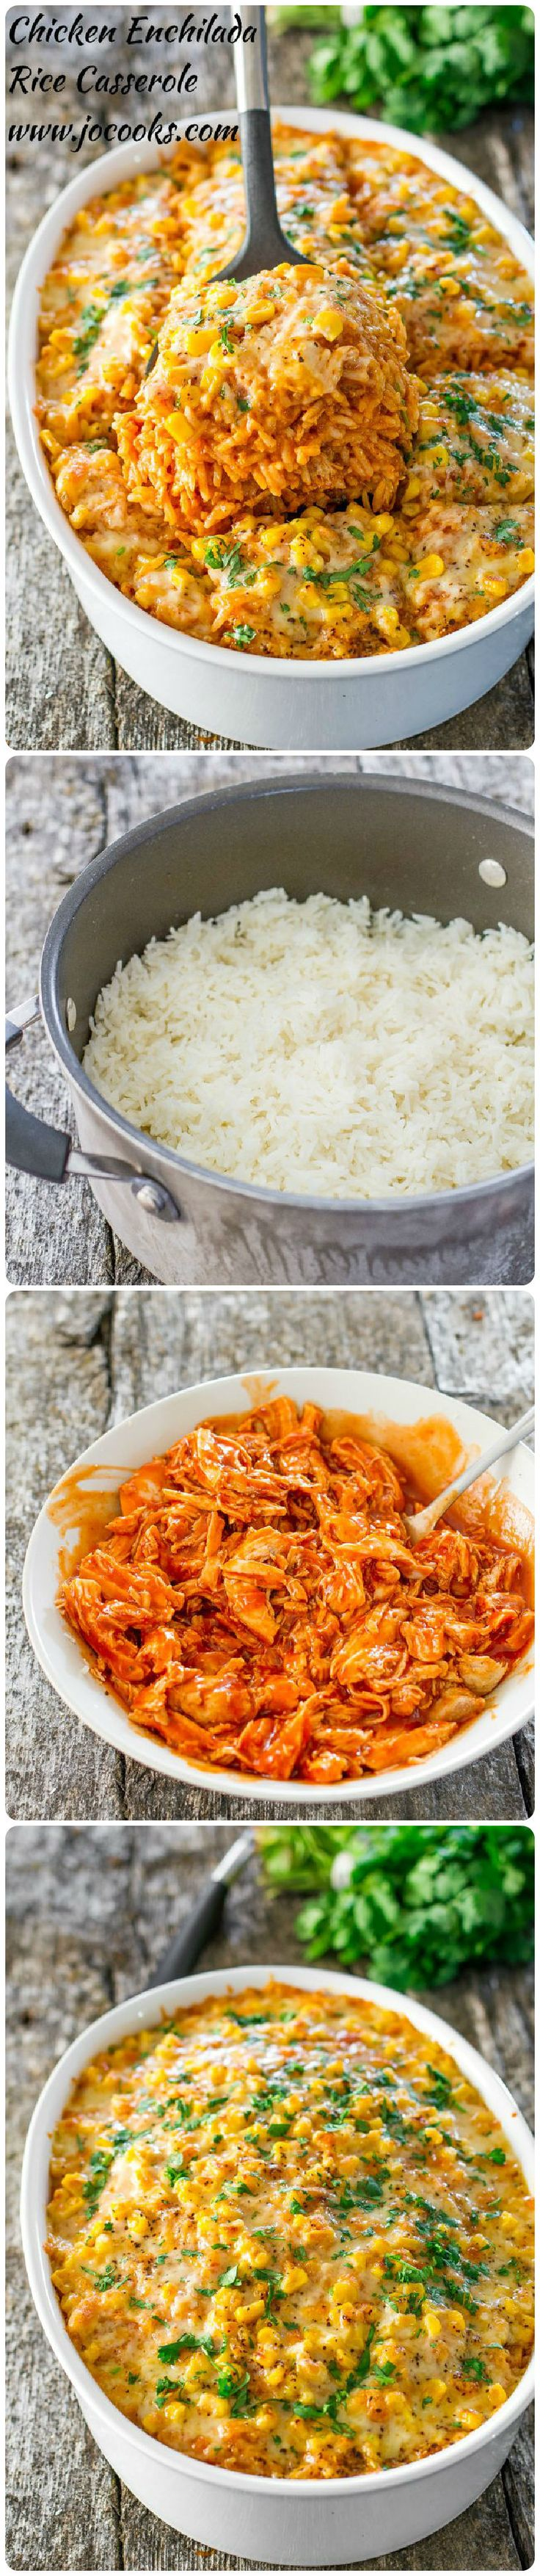 Chicken Enchilada Rice Casserole – all the makings of a chicken enchilada but with rice. I would use my homemade enchilada sauce